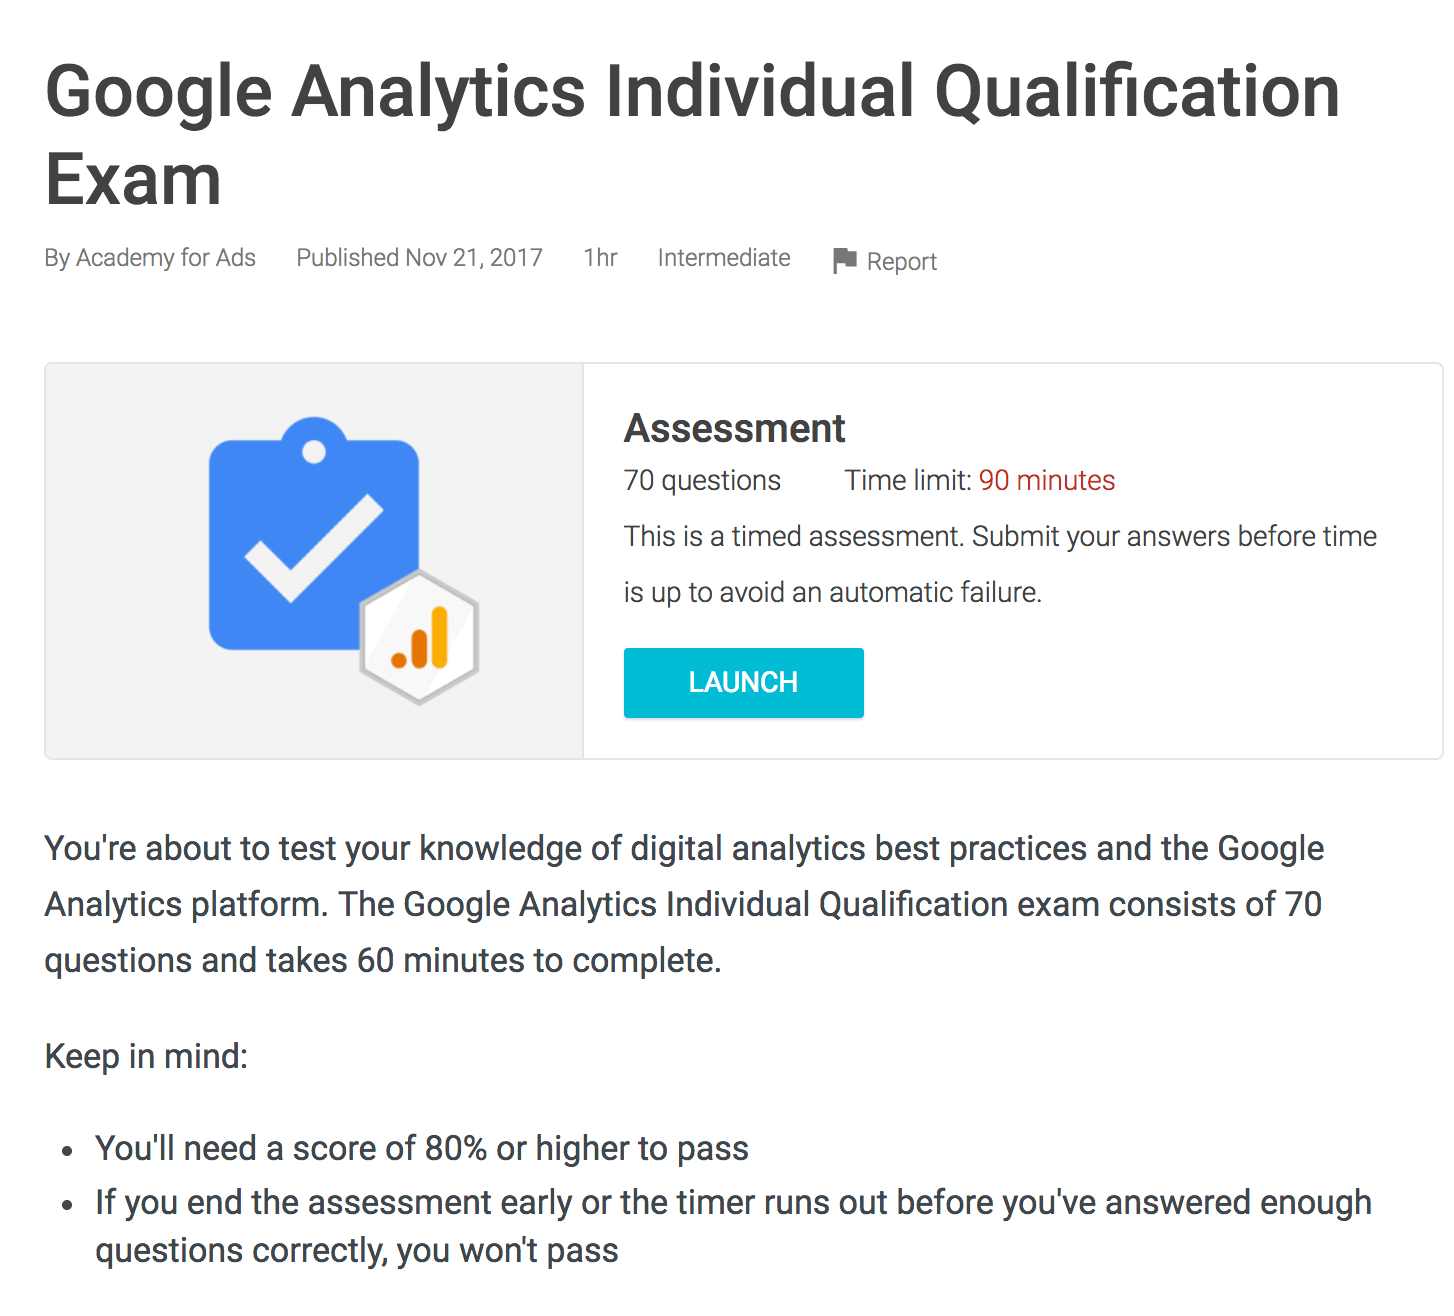 Passing the Google Analytics Exam